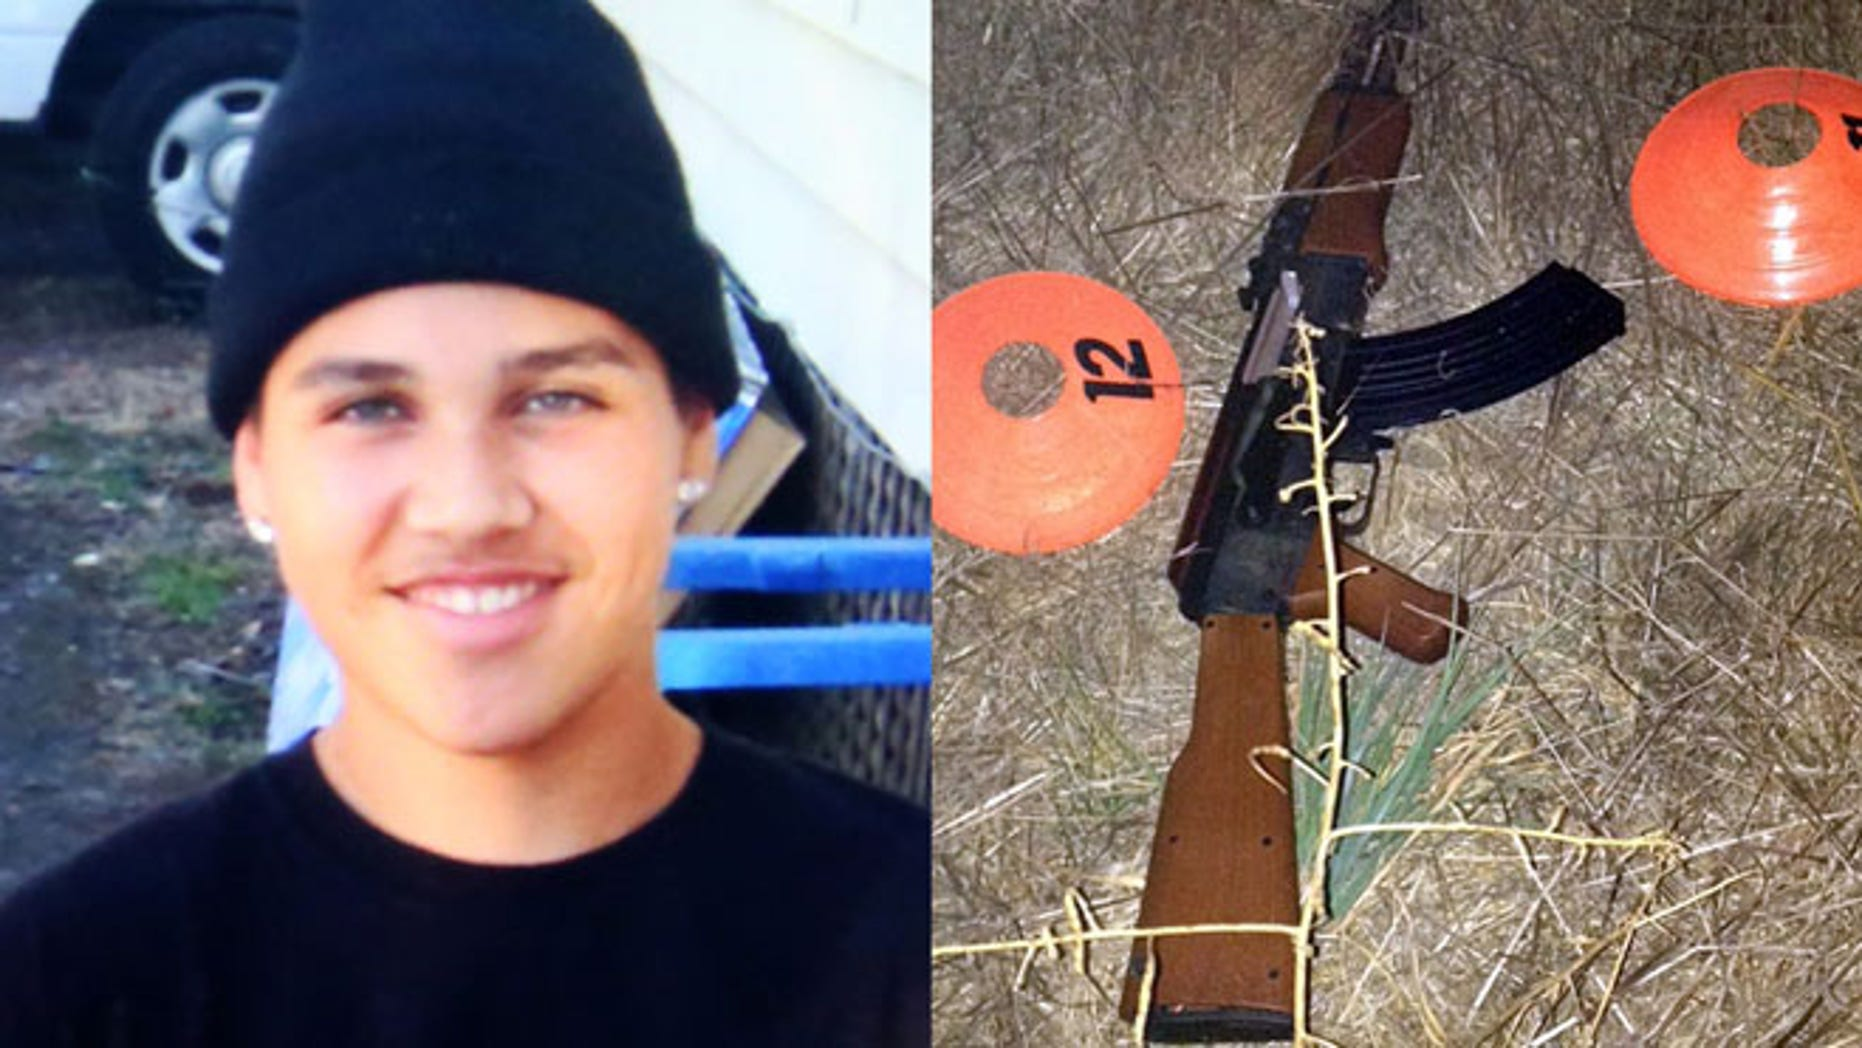 An undated photo of 13-year-old Andy Lopez and the replica assault rifle he was holding when he was shot and killed by two Sonoma County deputies in Santa Rosa, Calif.